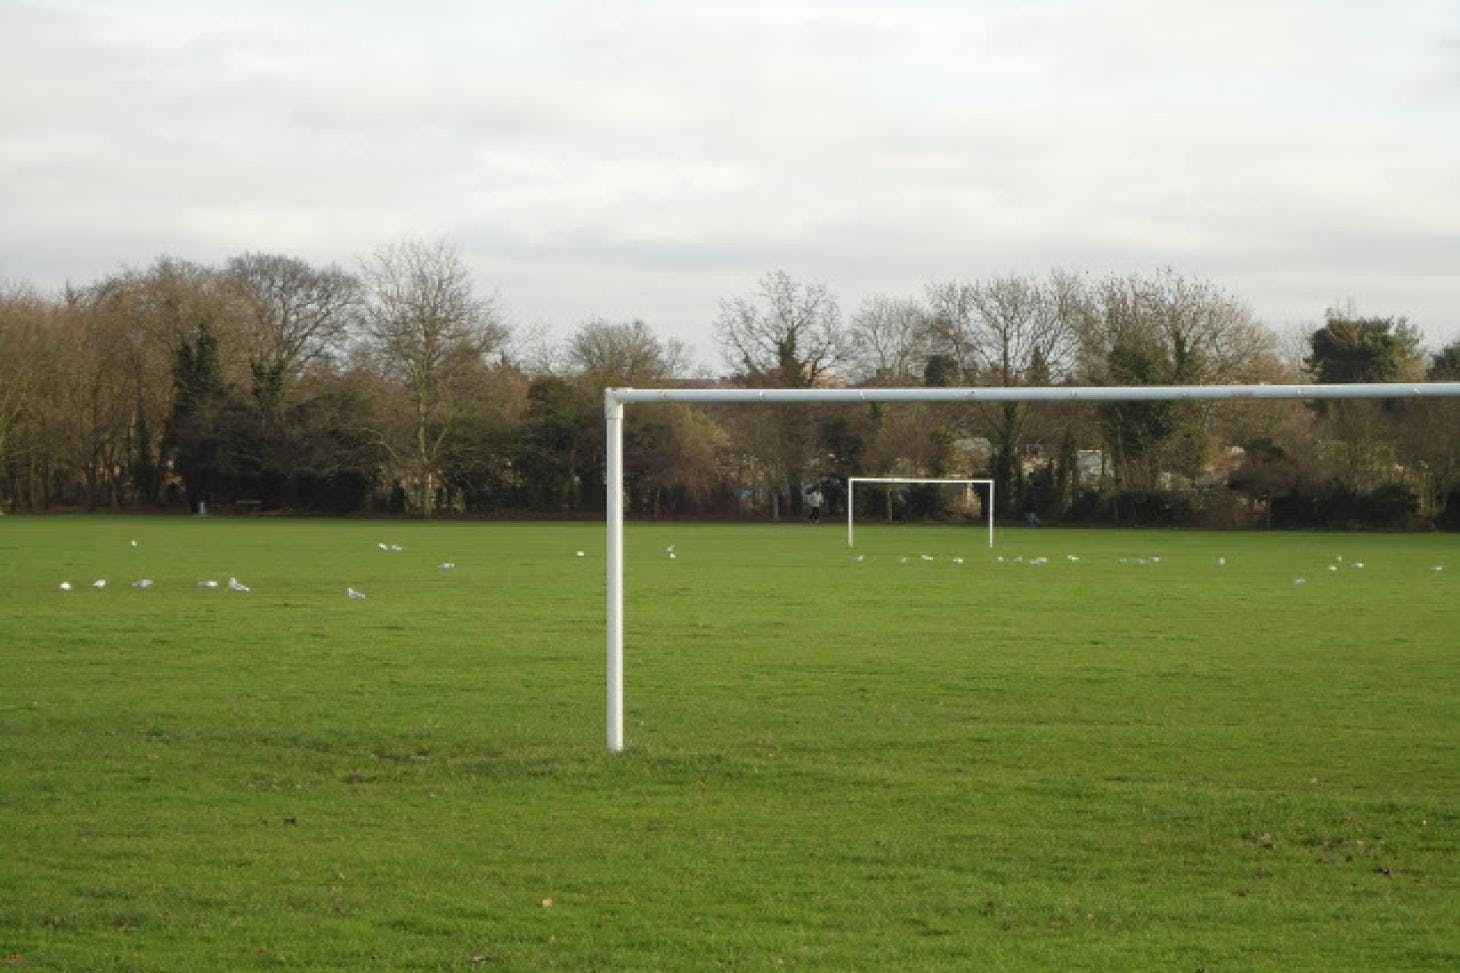 Headstone Manor Recreation Ground 11 a side | Grass football pitch